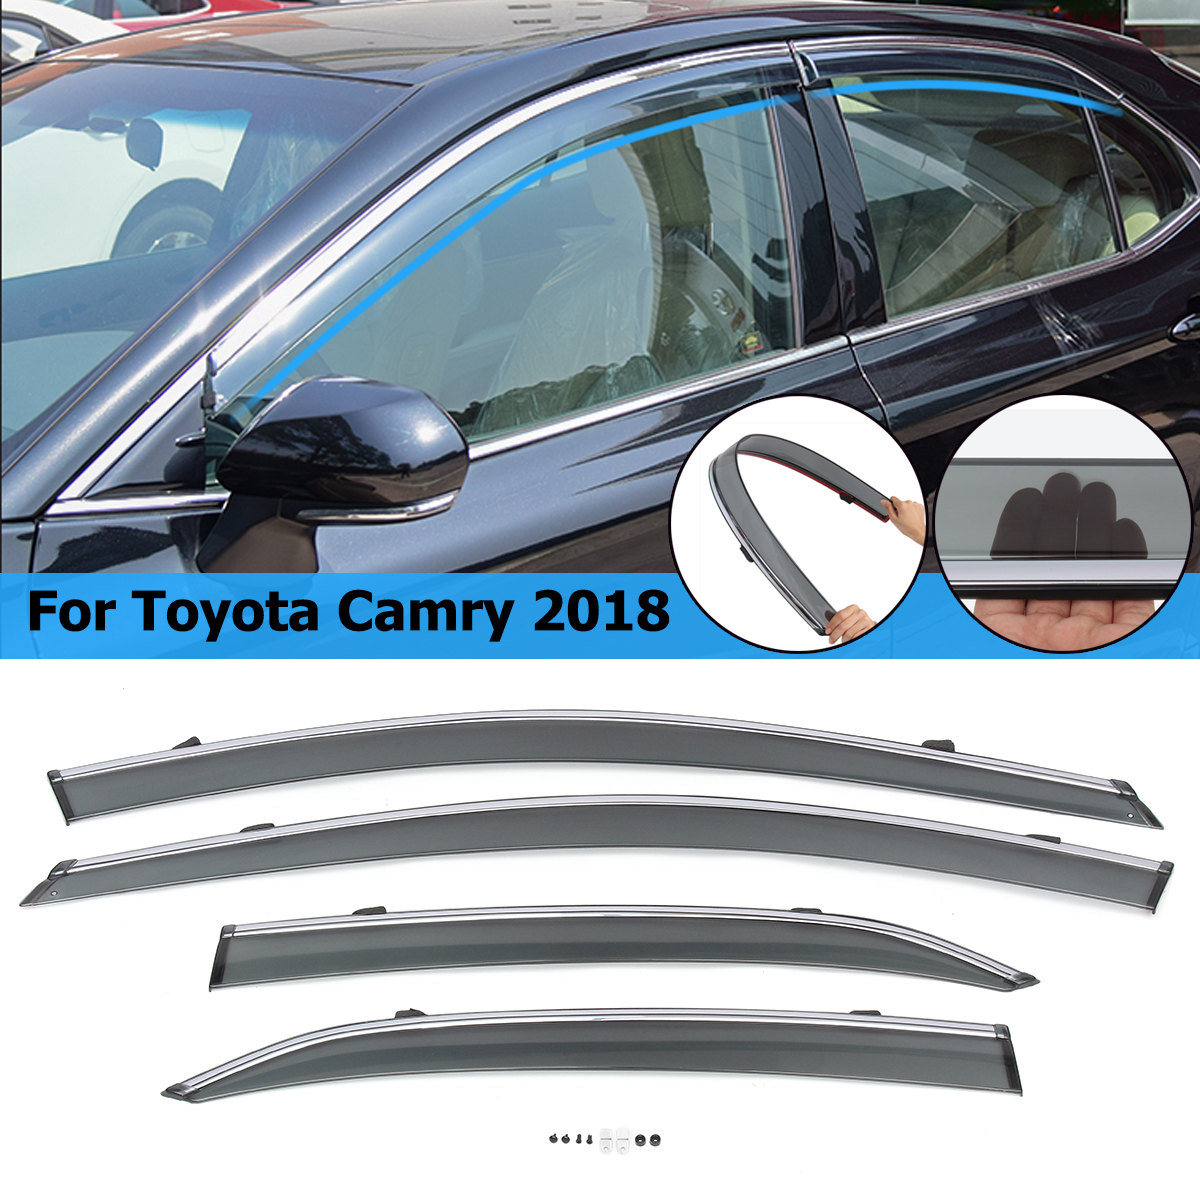 4pcs Car Styling Front & Rear Sun Window Visors Chrome Trim For Toyota Camry 2018 Smoke4pcs Car Styling Front & Rear Sun Window Visors Chrome Trim For Toyota Camry 2018 Smoke